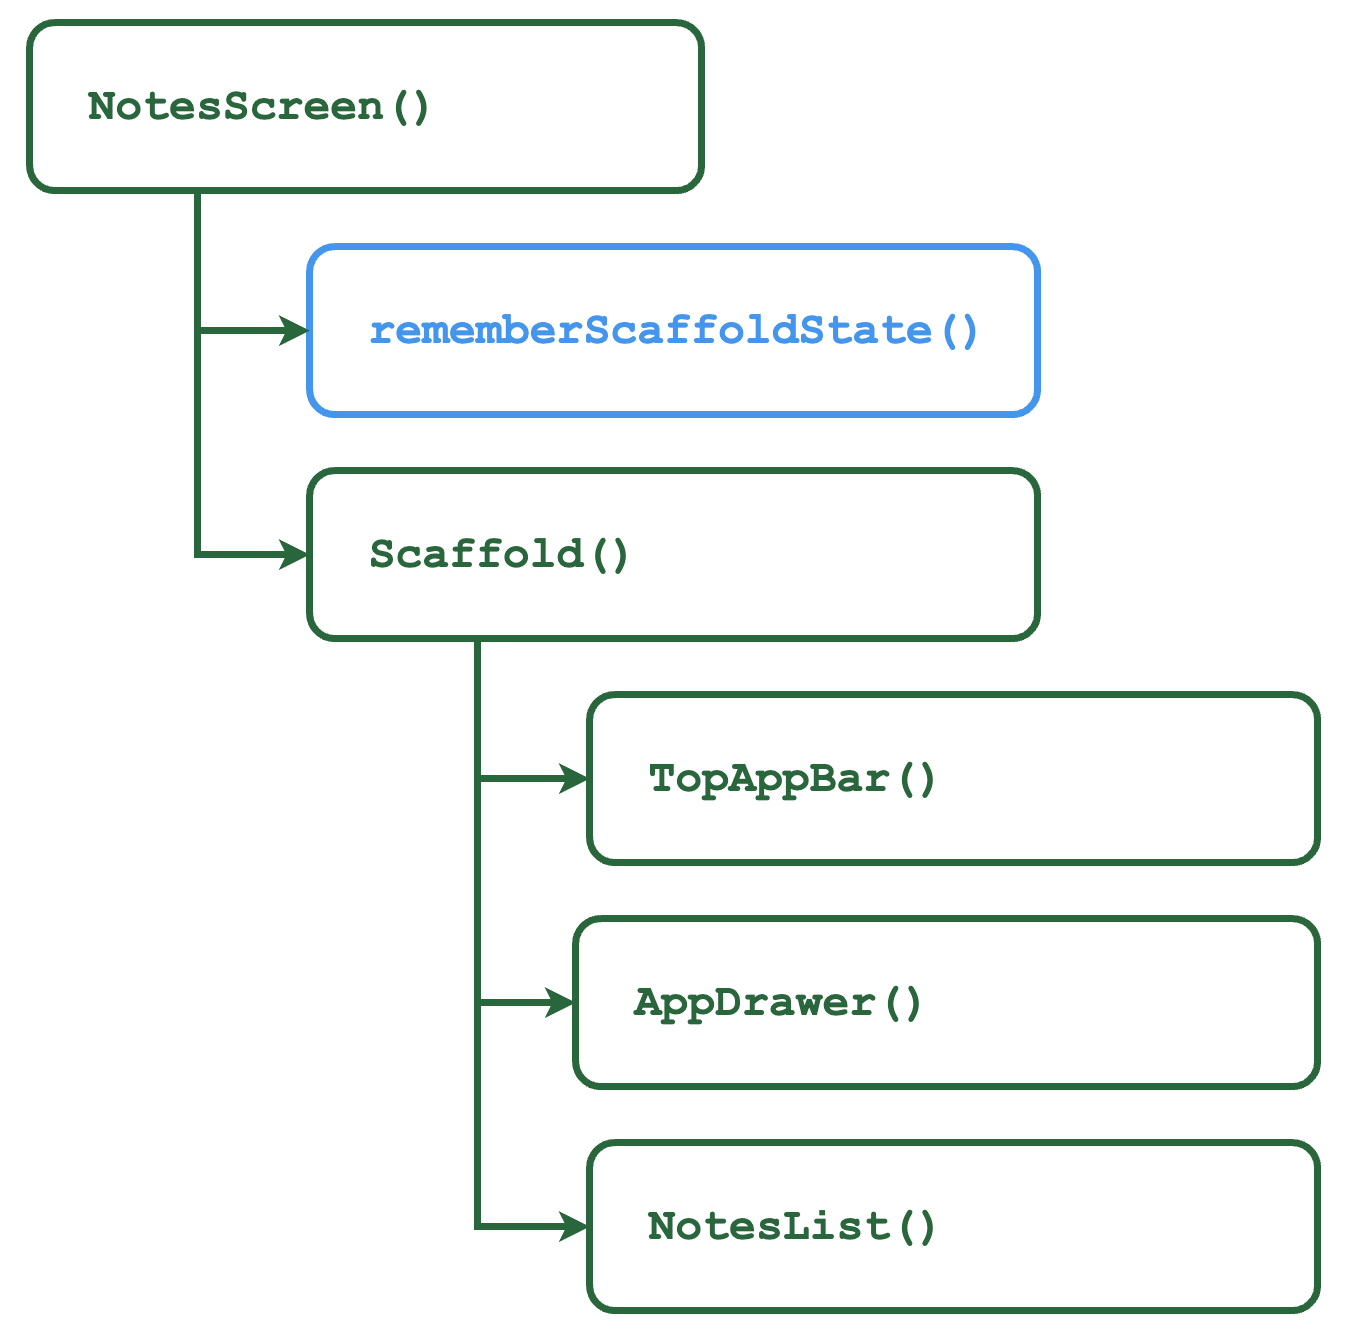 Notes Screen - Composition Tree